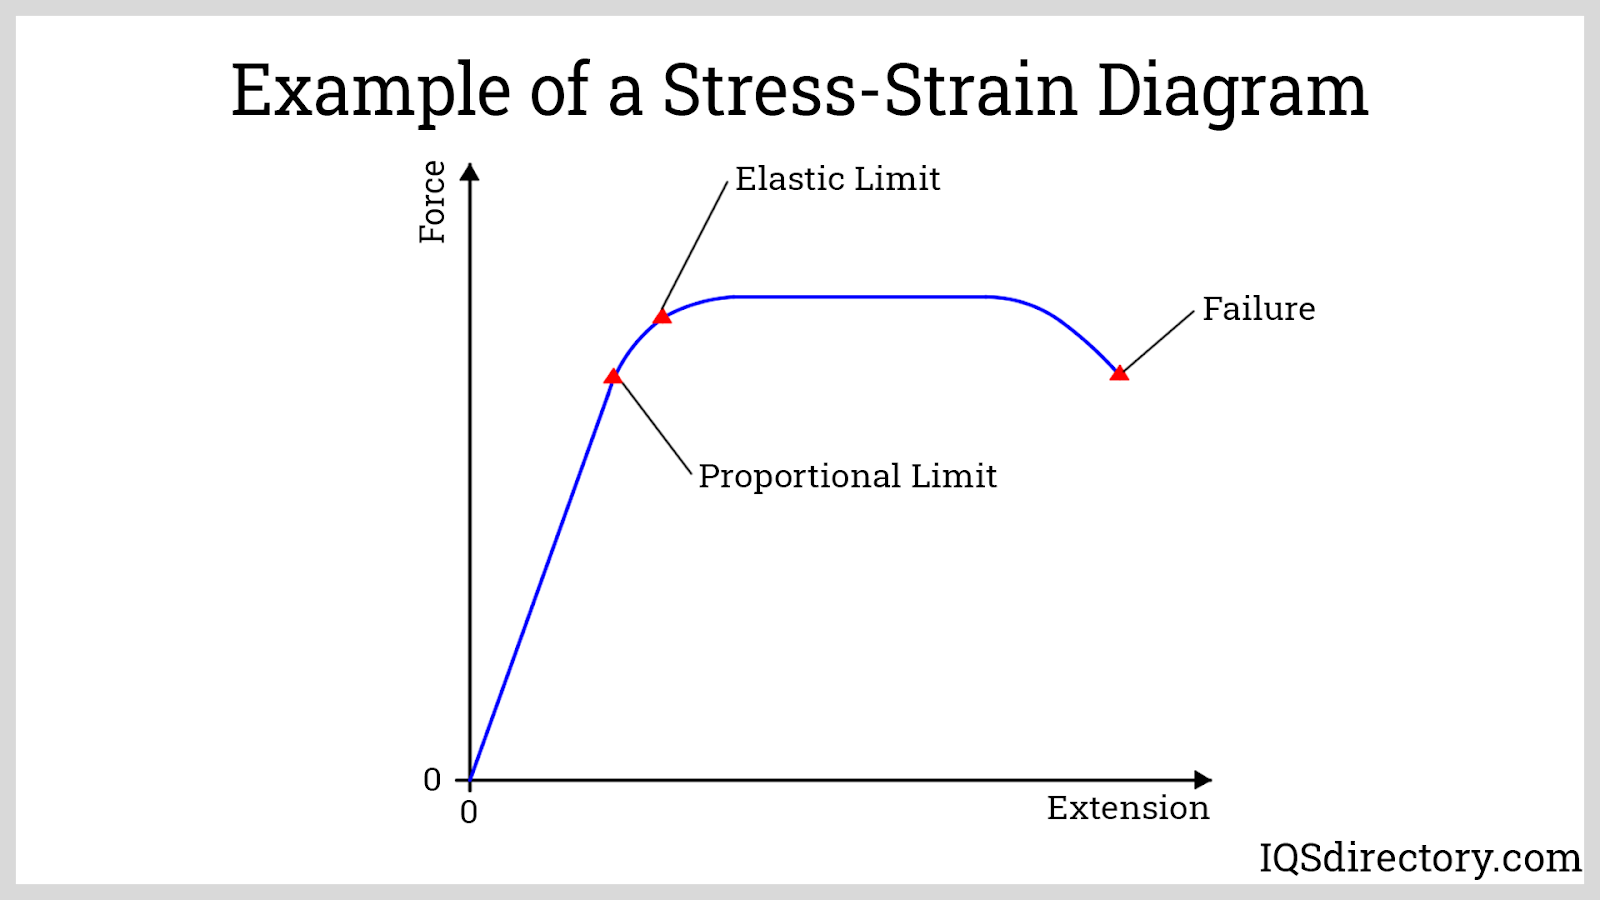 Example of a Stress-Strain Diagram